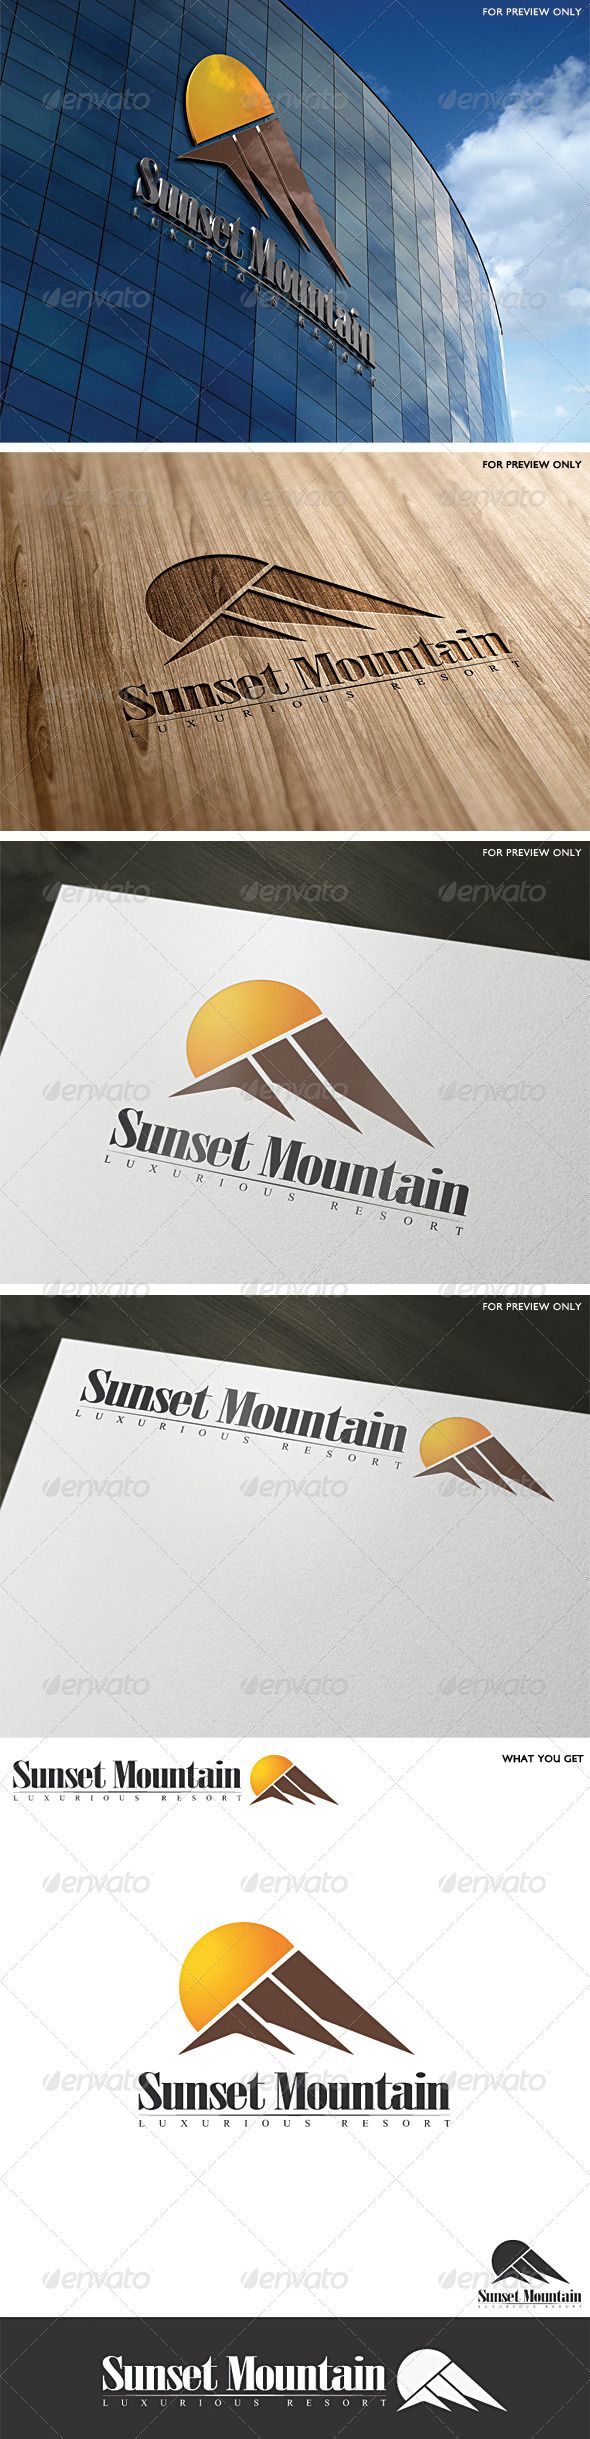 take what you need template - 1000 images about logo templates on pinterest logos